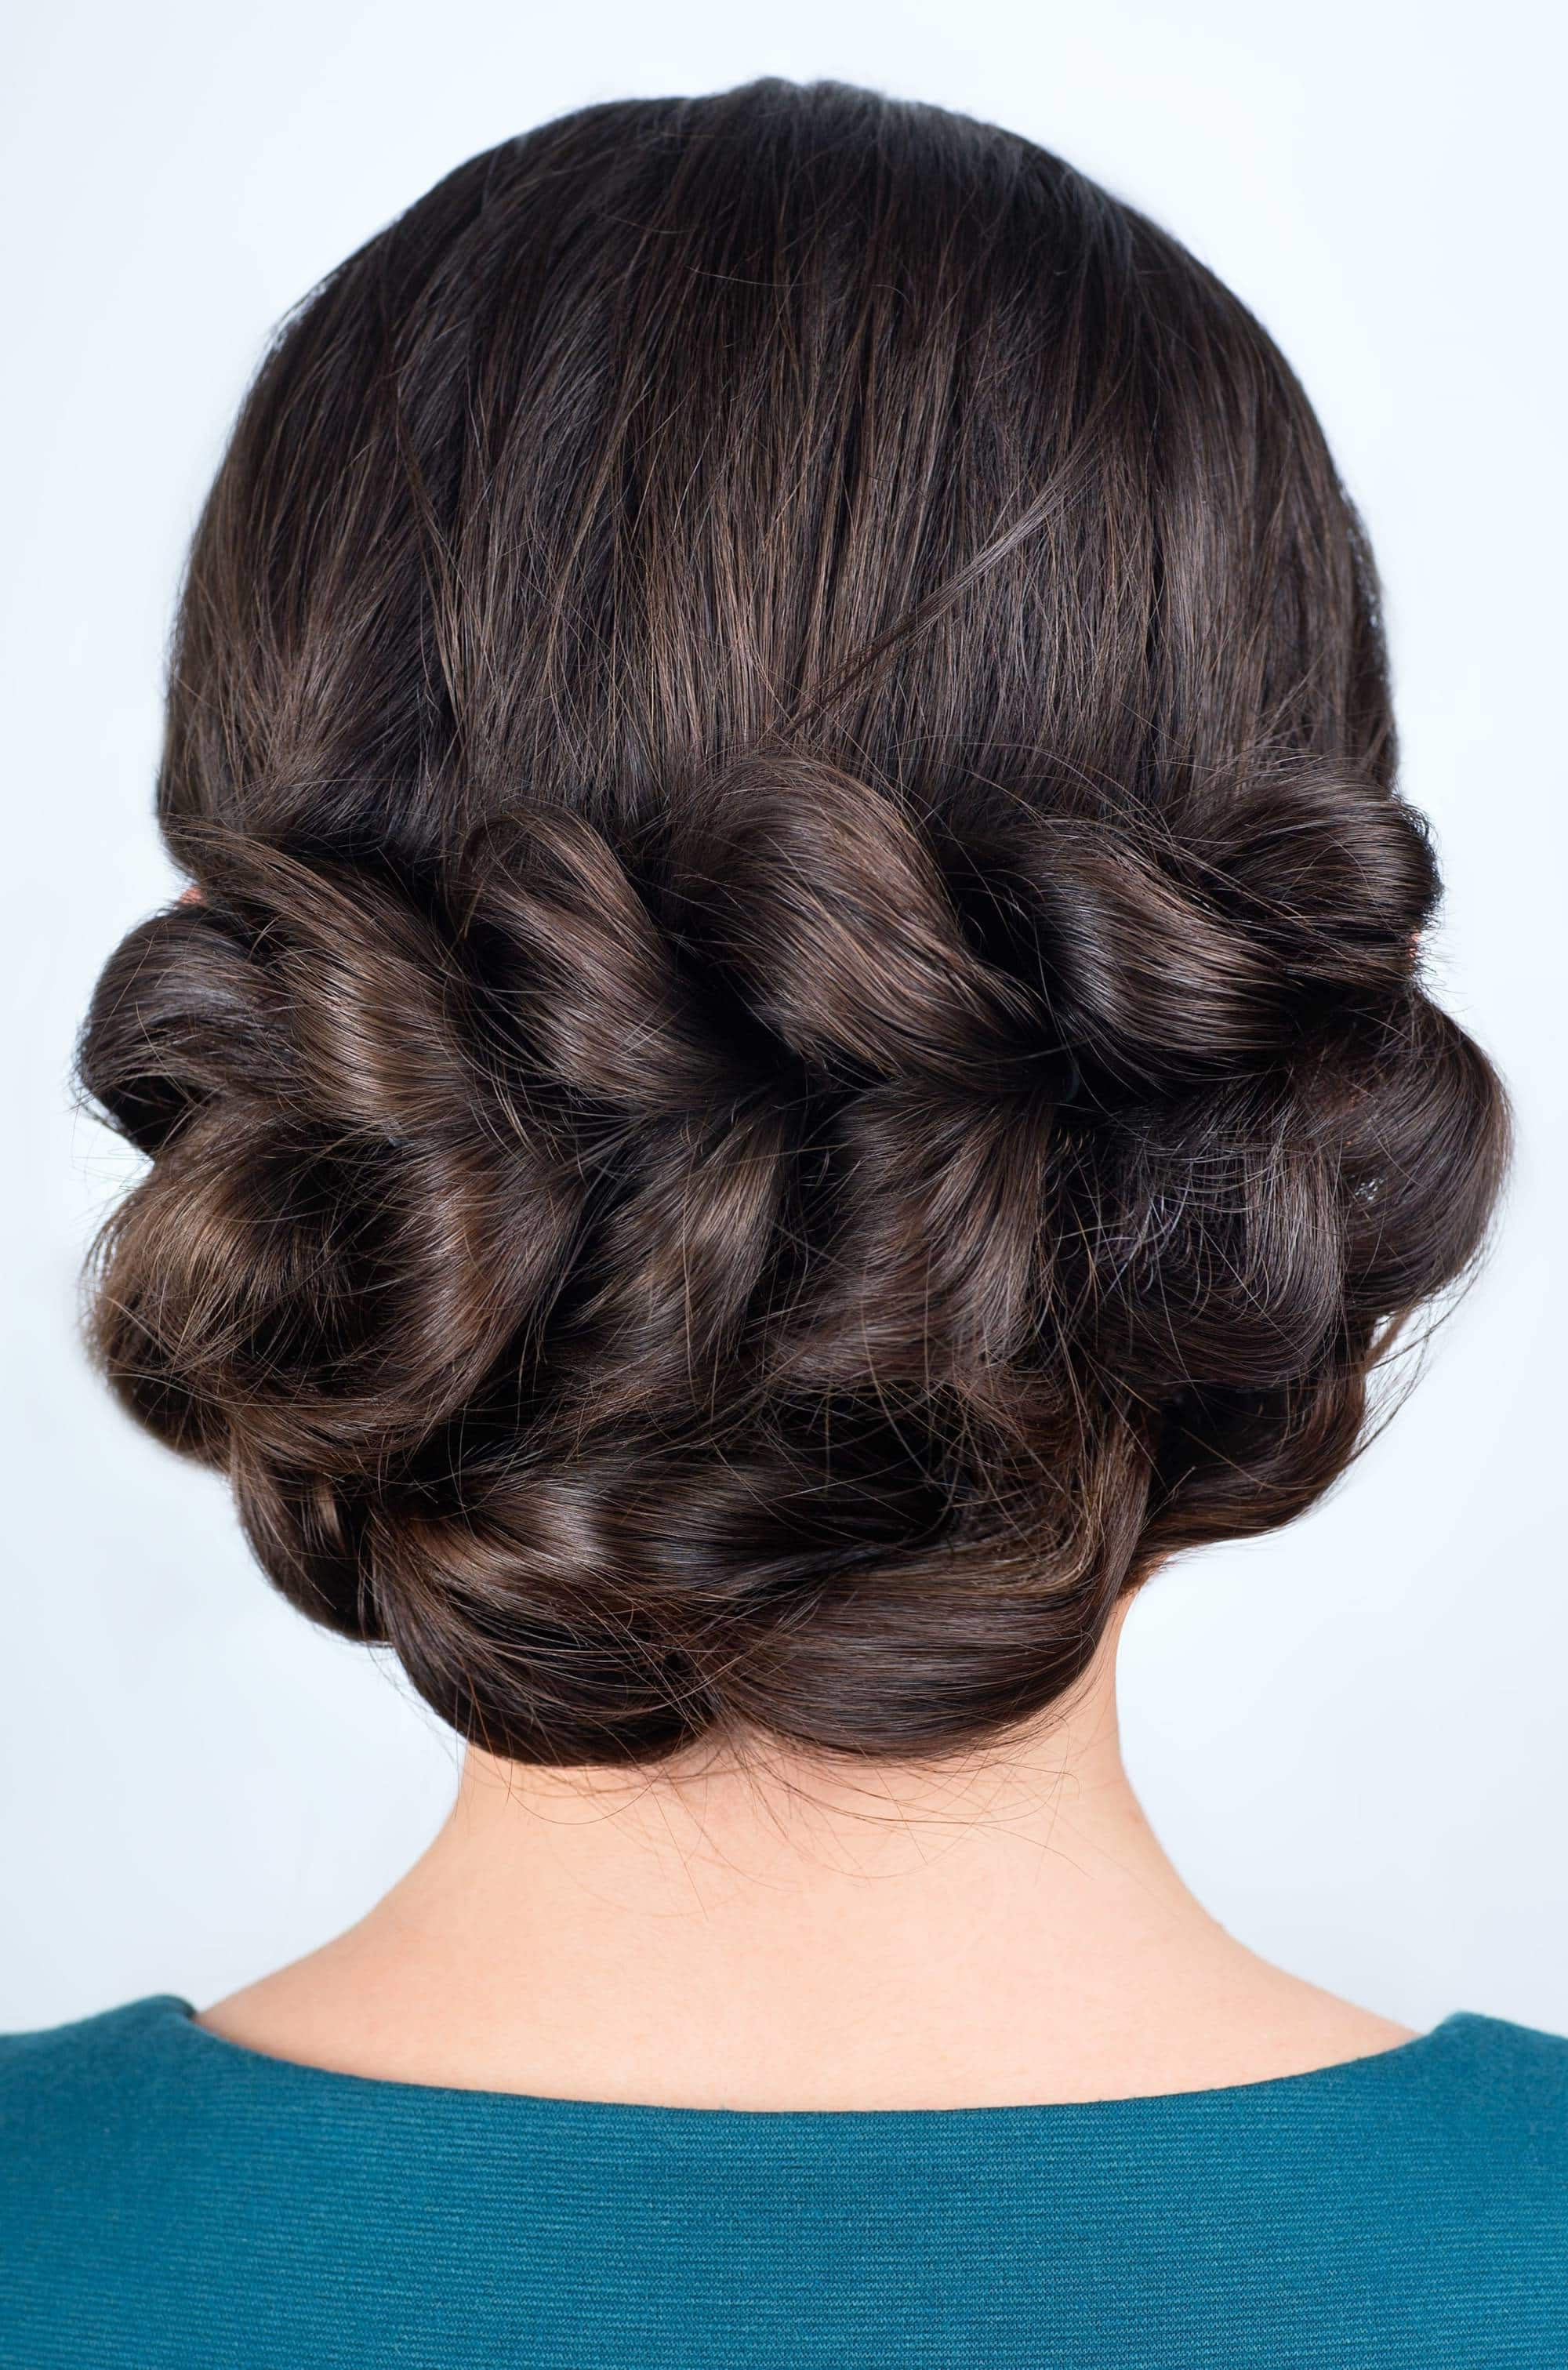 45 Braided Updos For Long Hair For All Personalities With Well Known Jewelled Basket Weave Prom Updos (Gallery 7 of 20)